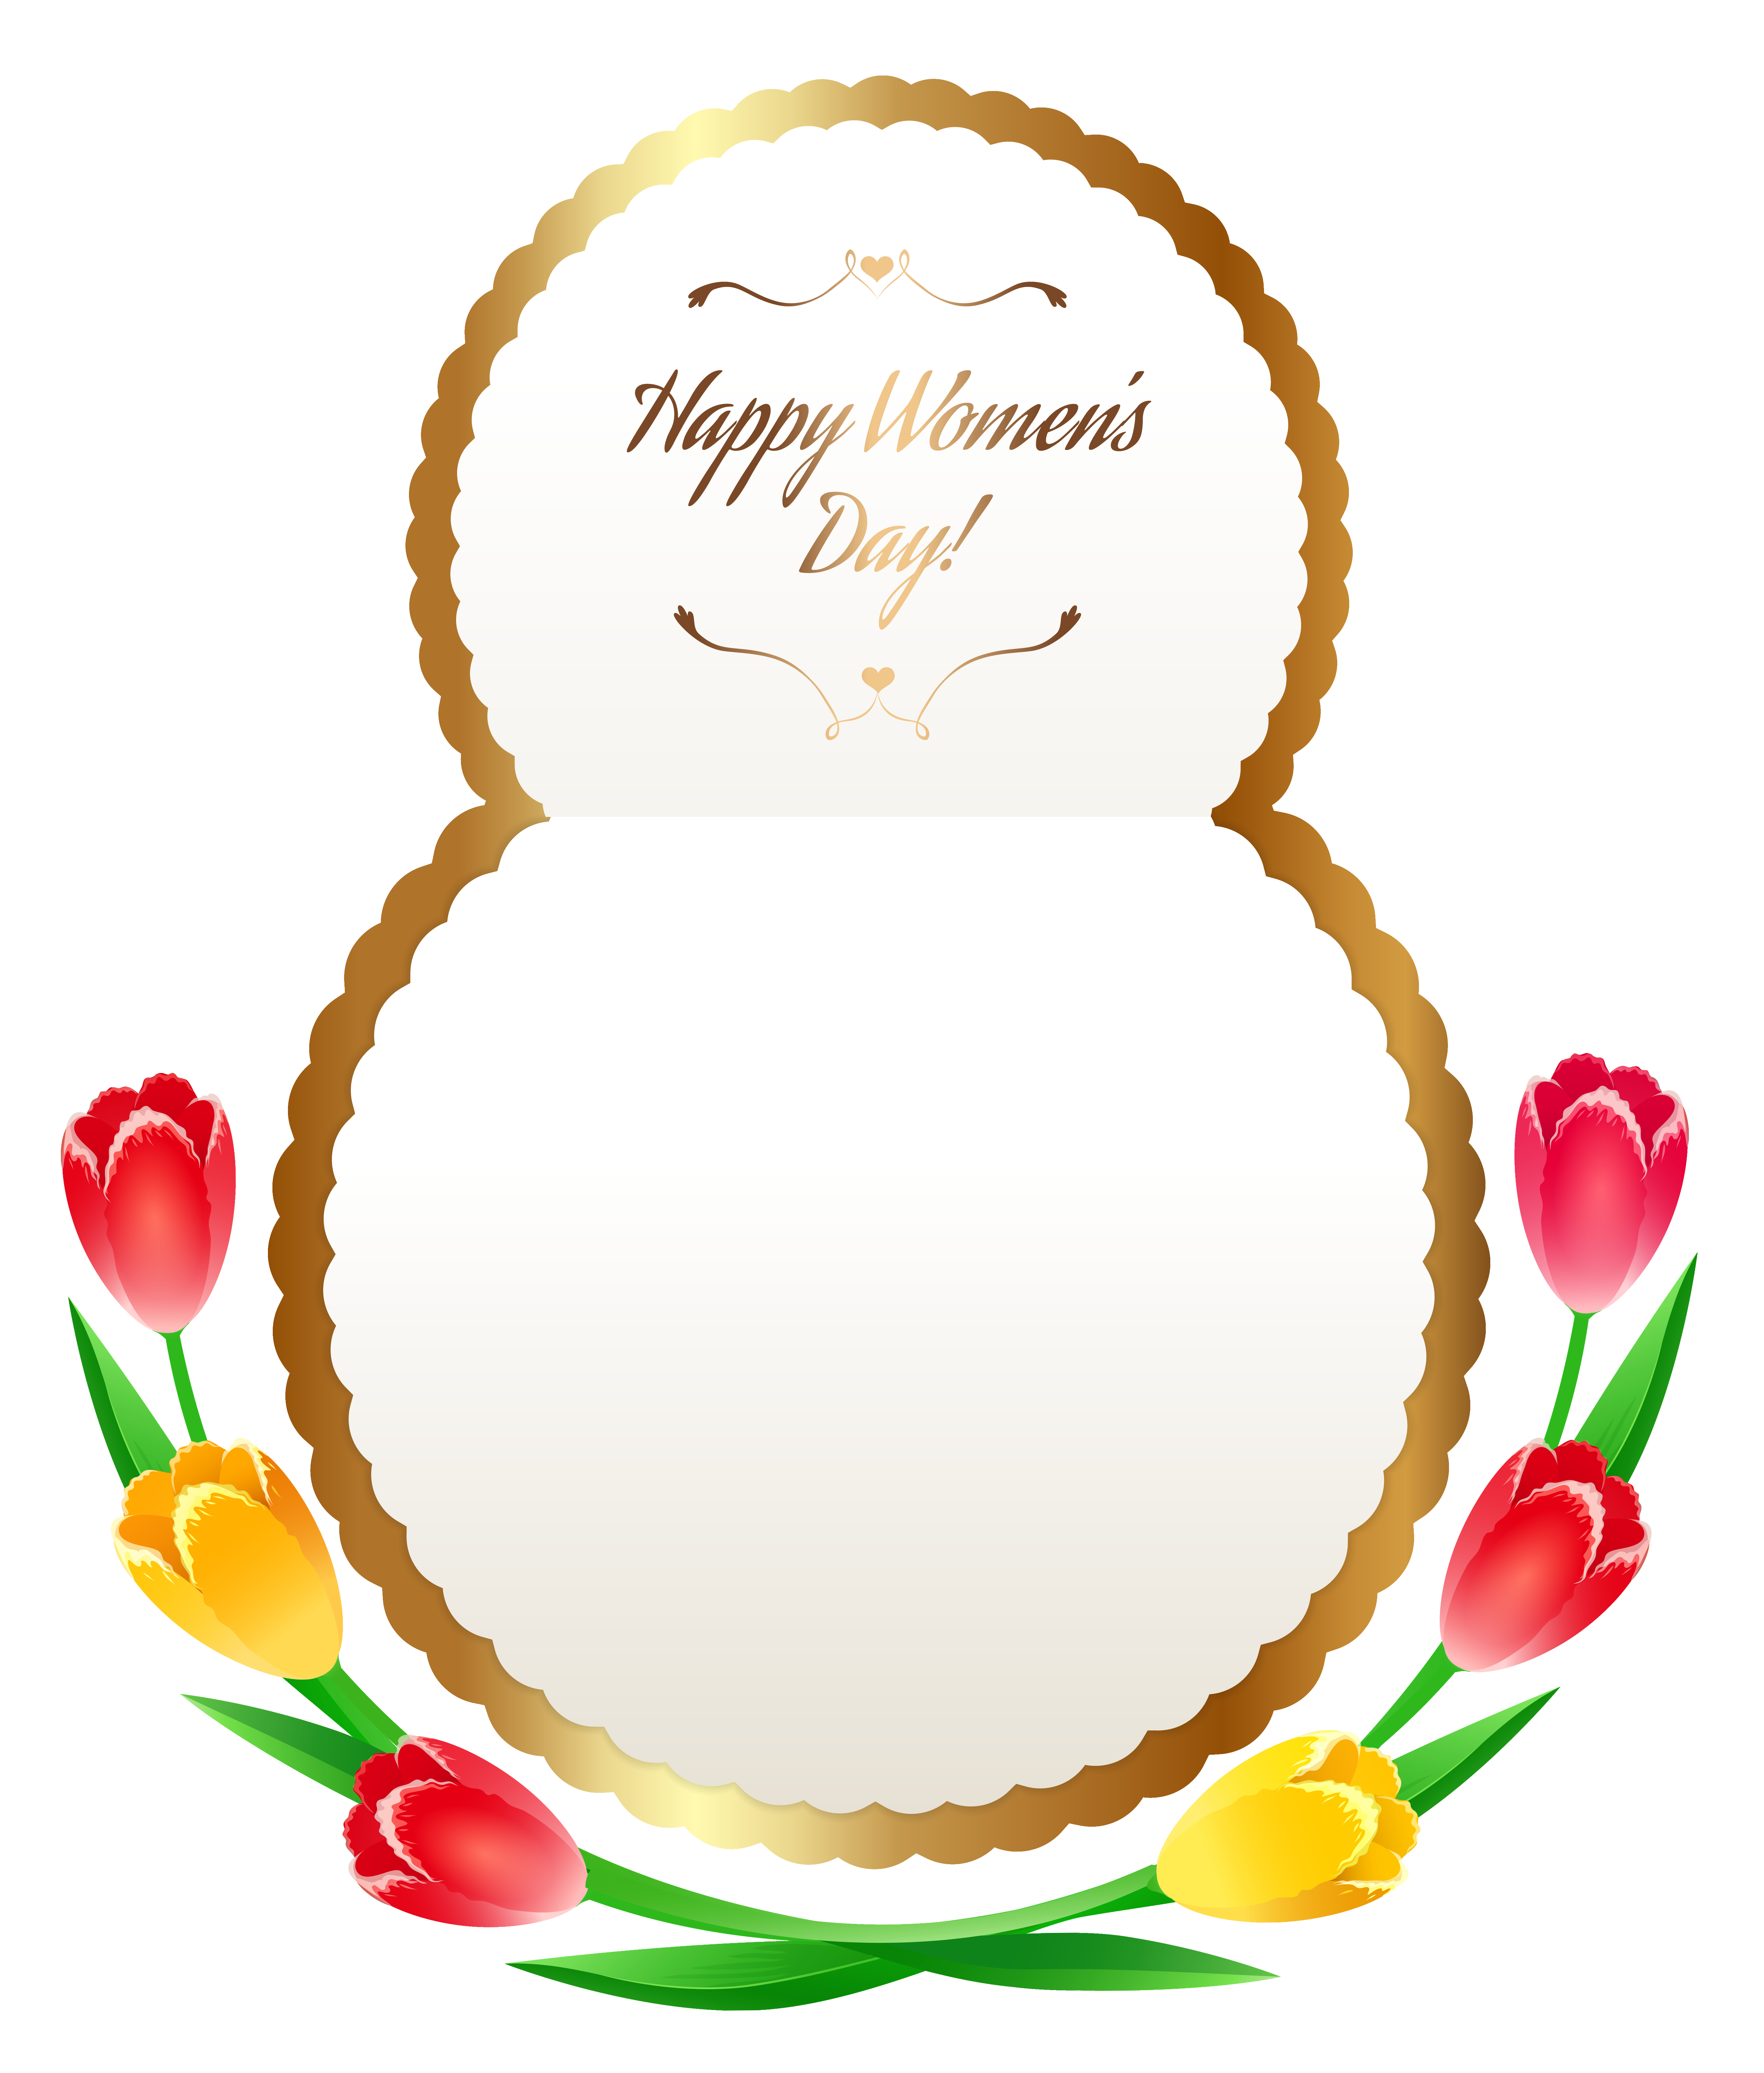 Piano clipart happy. Womens day png image